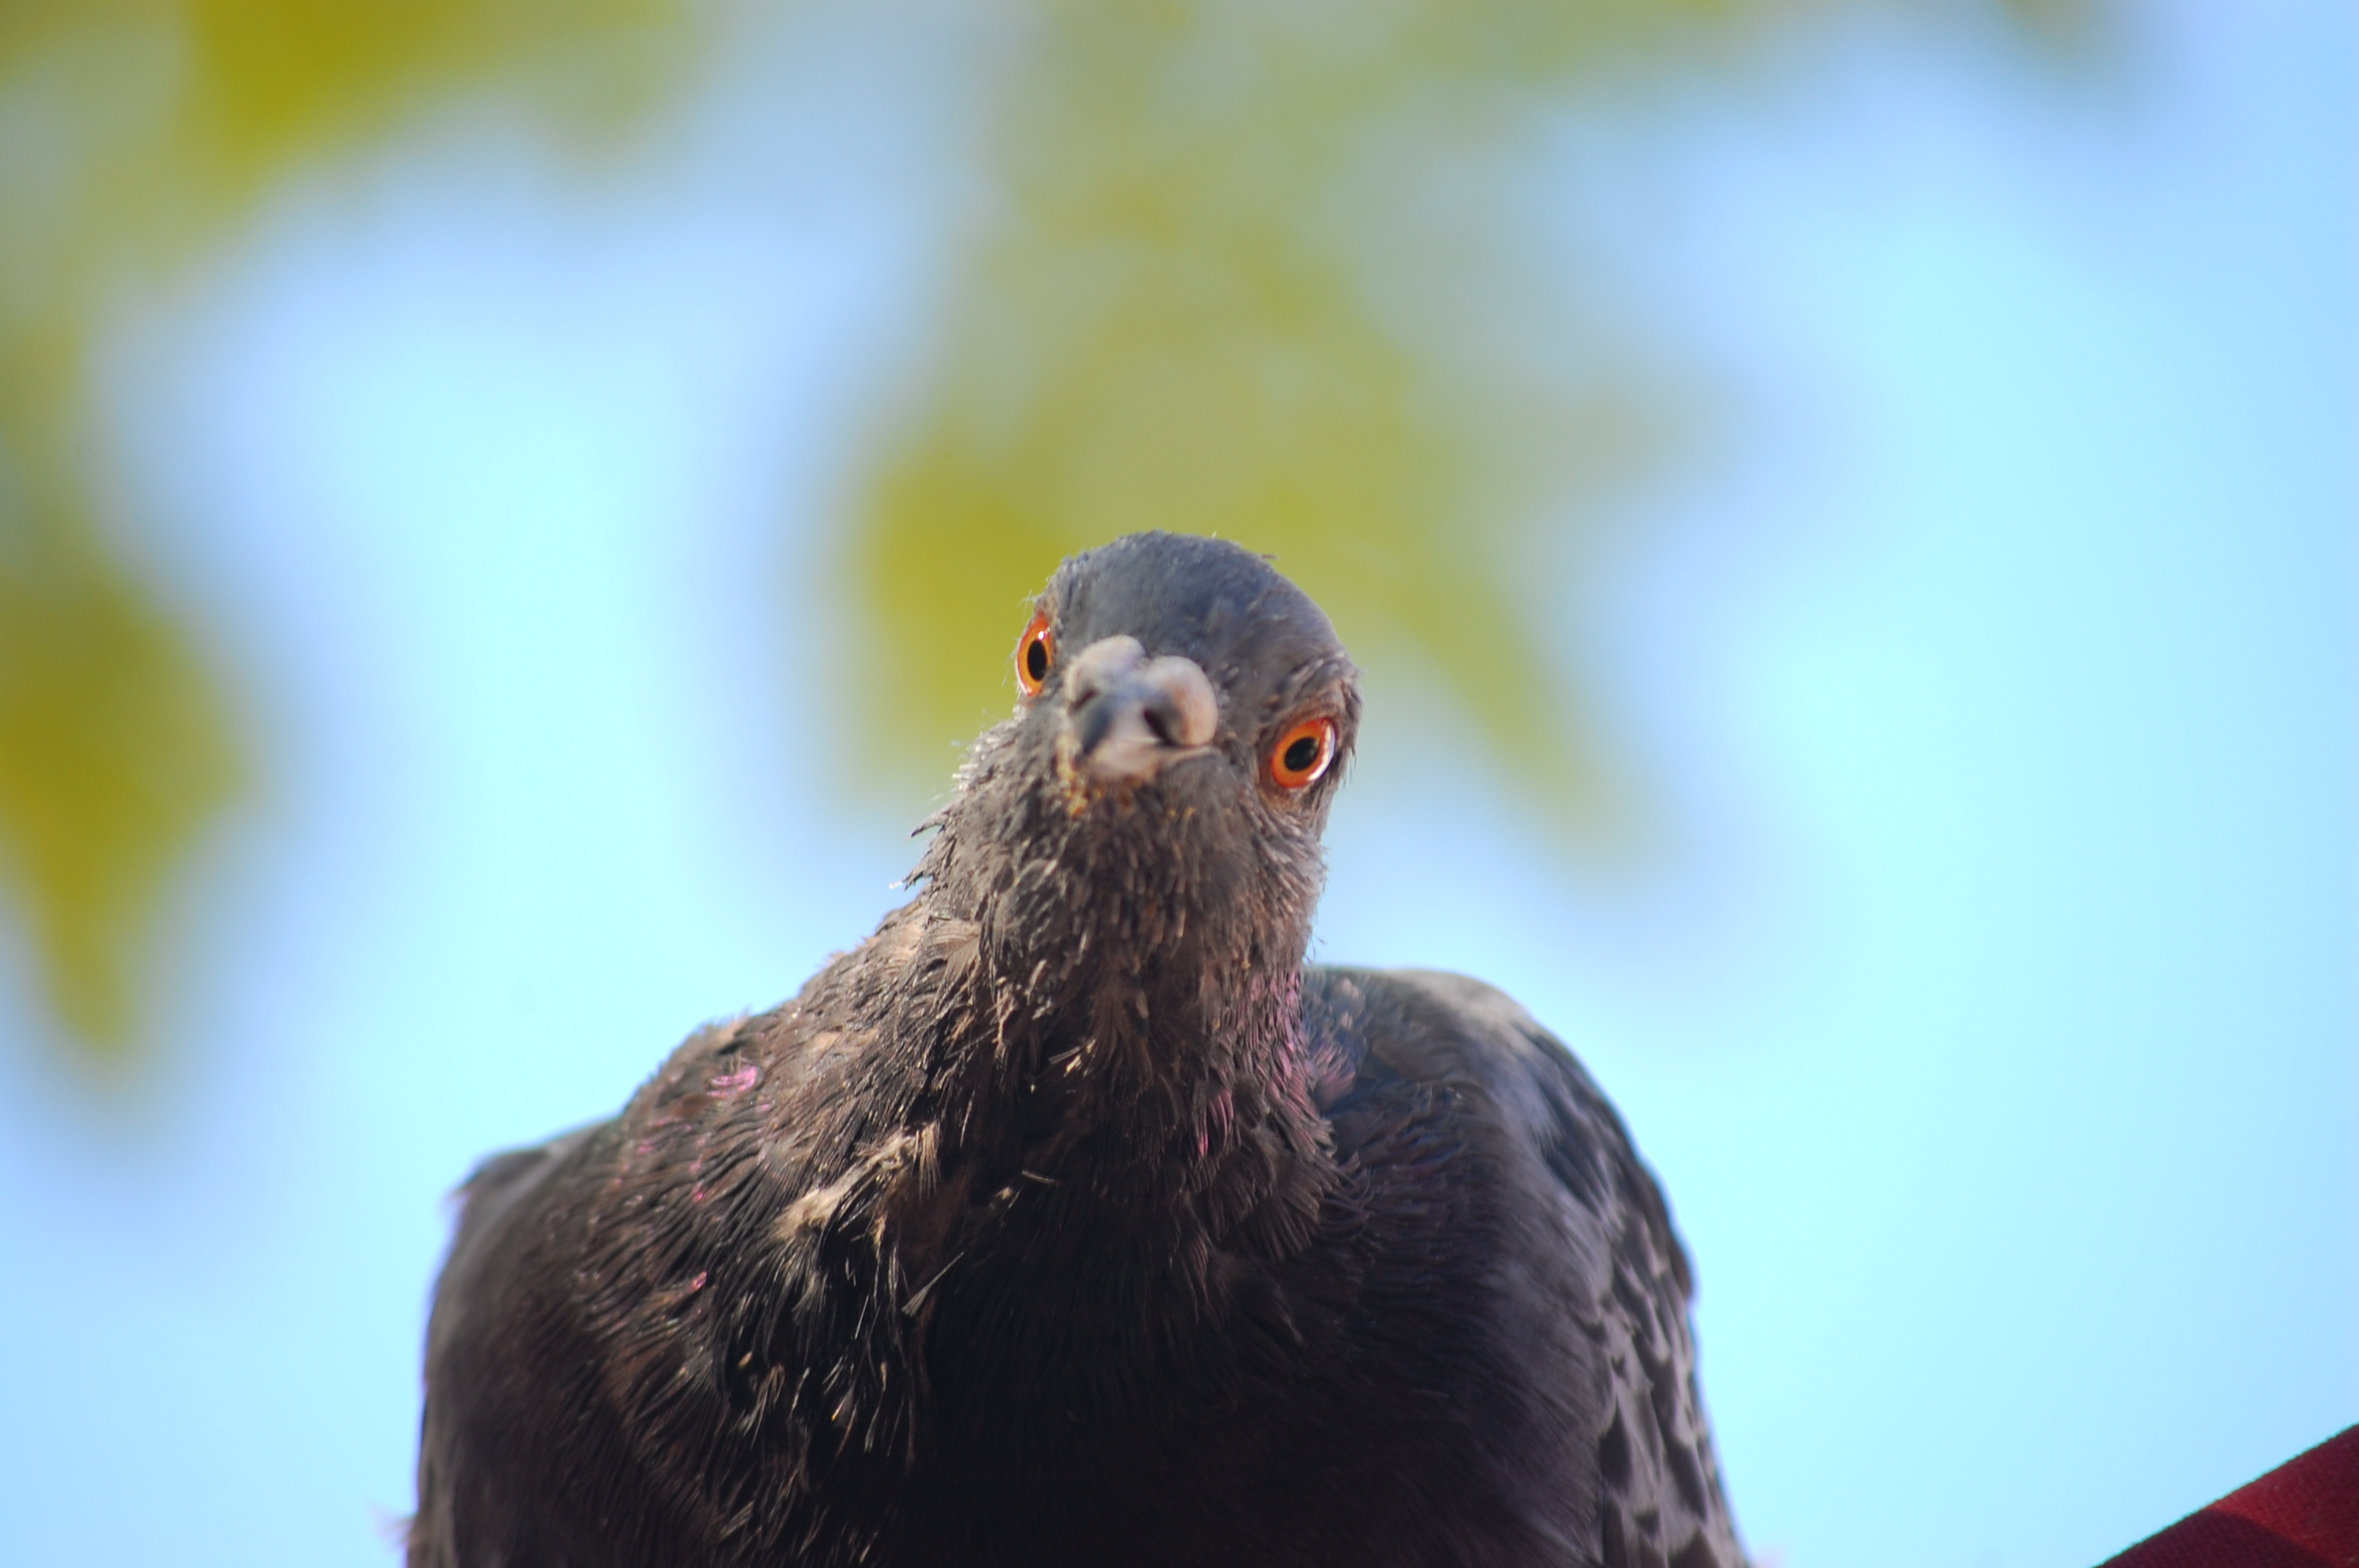 Picture of pigeon close up in Europe